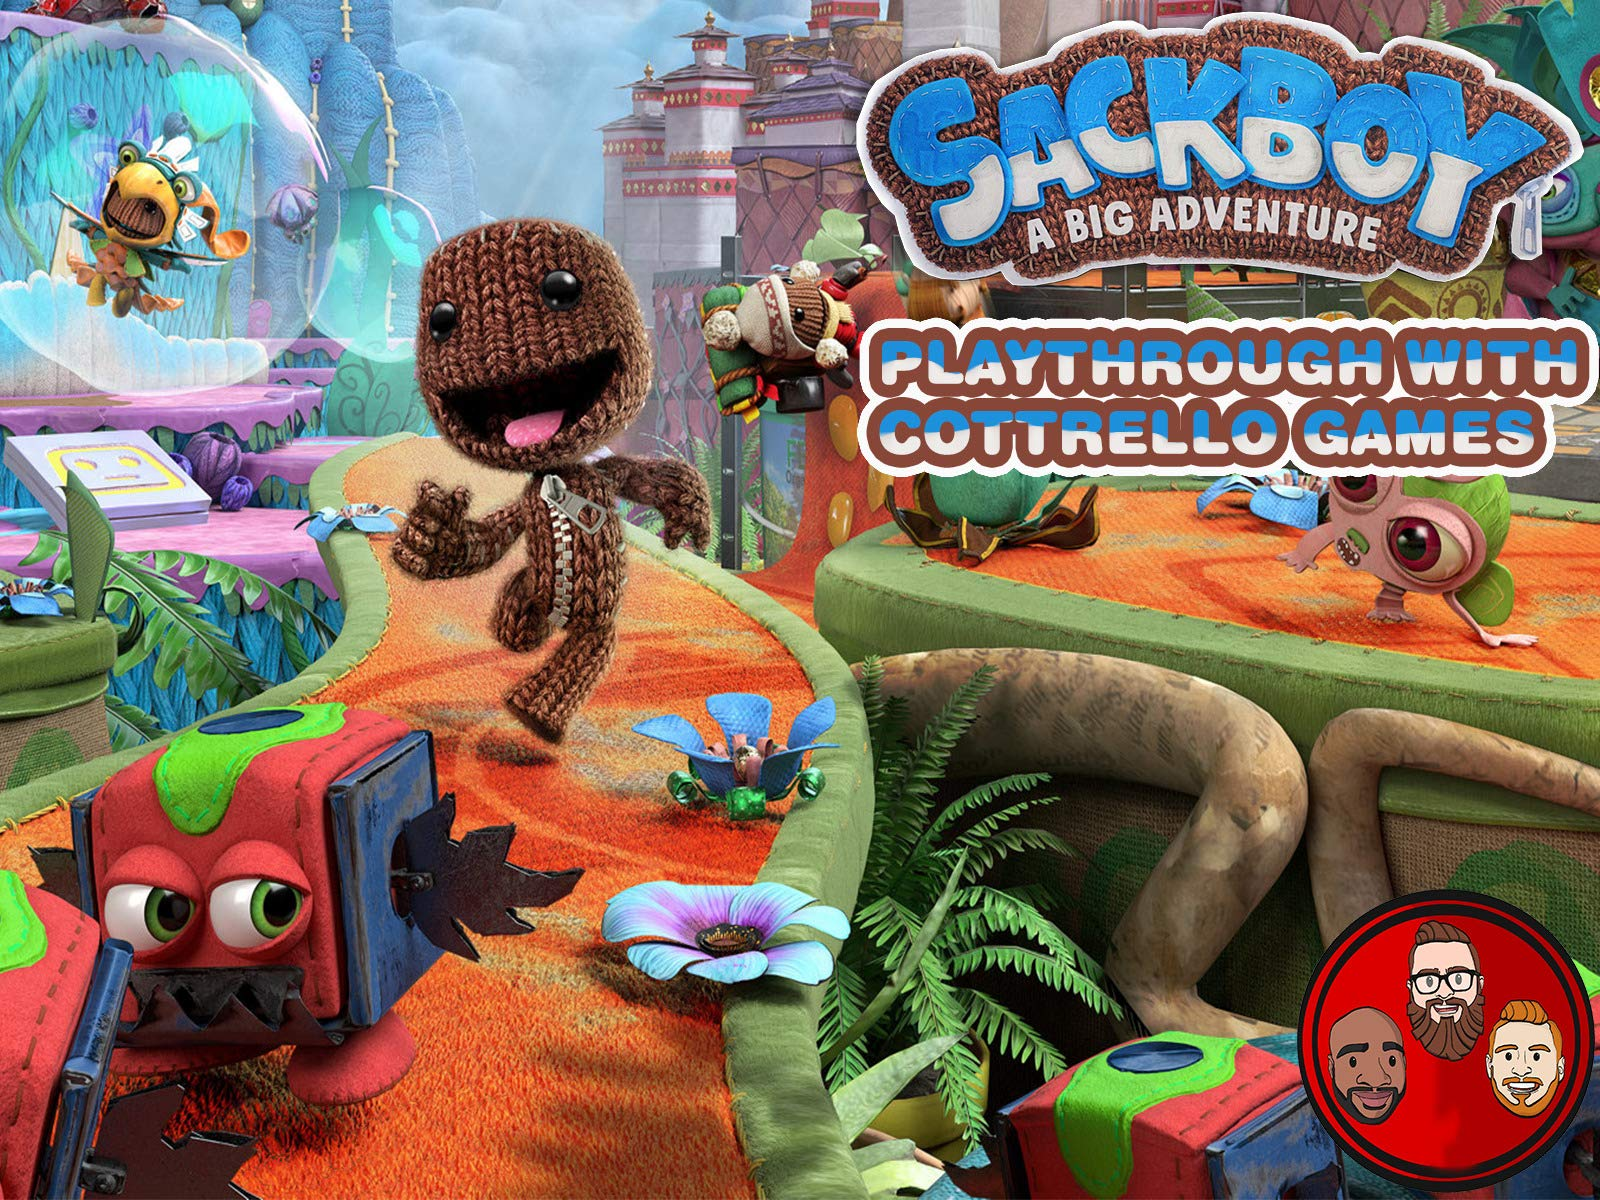 Clip: Sackboy: A Big Adventure Multiplayer Playthrough with Cottrello Games - Season 1